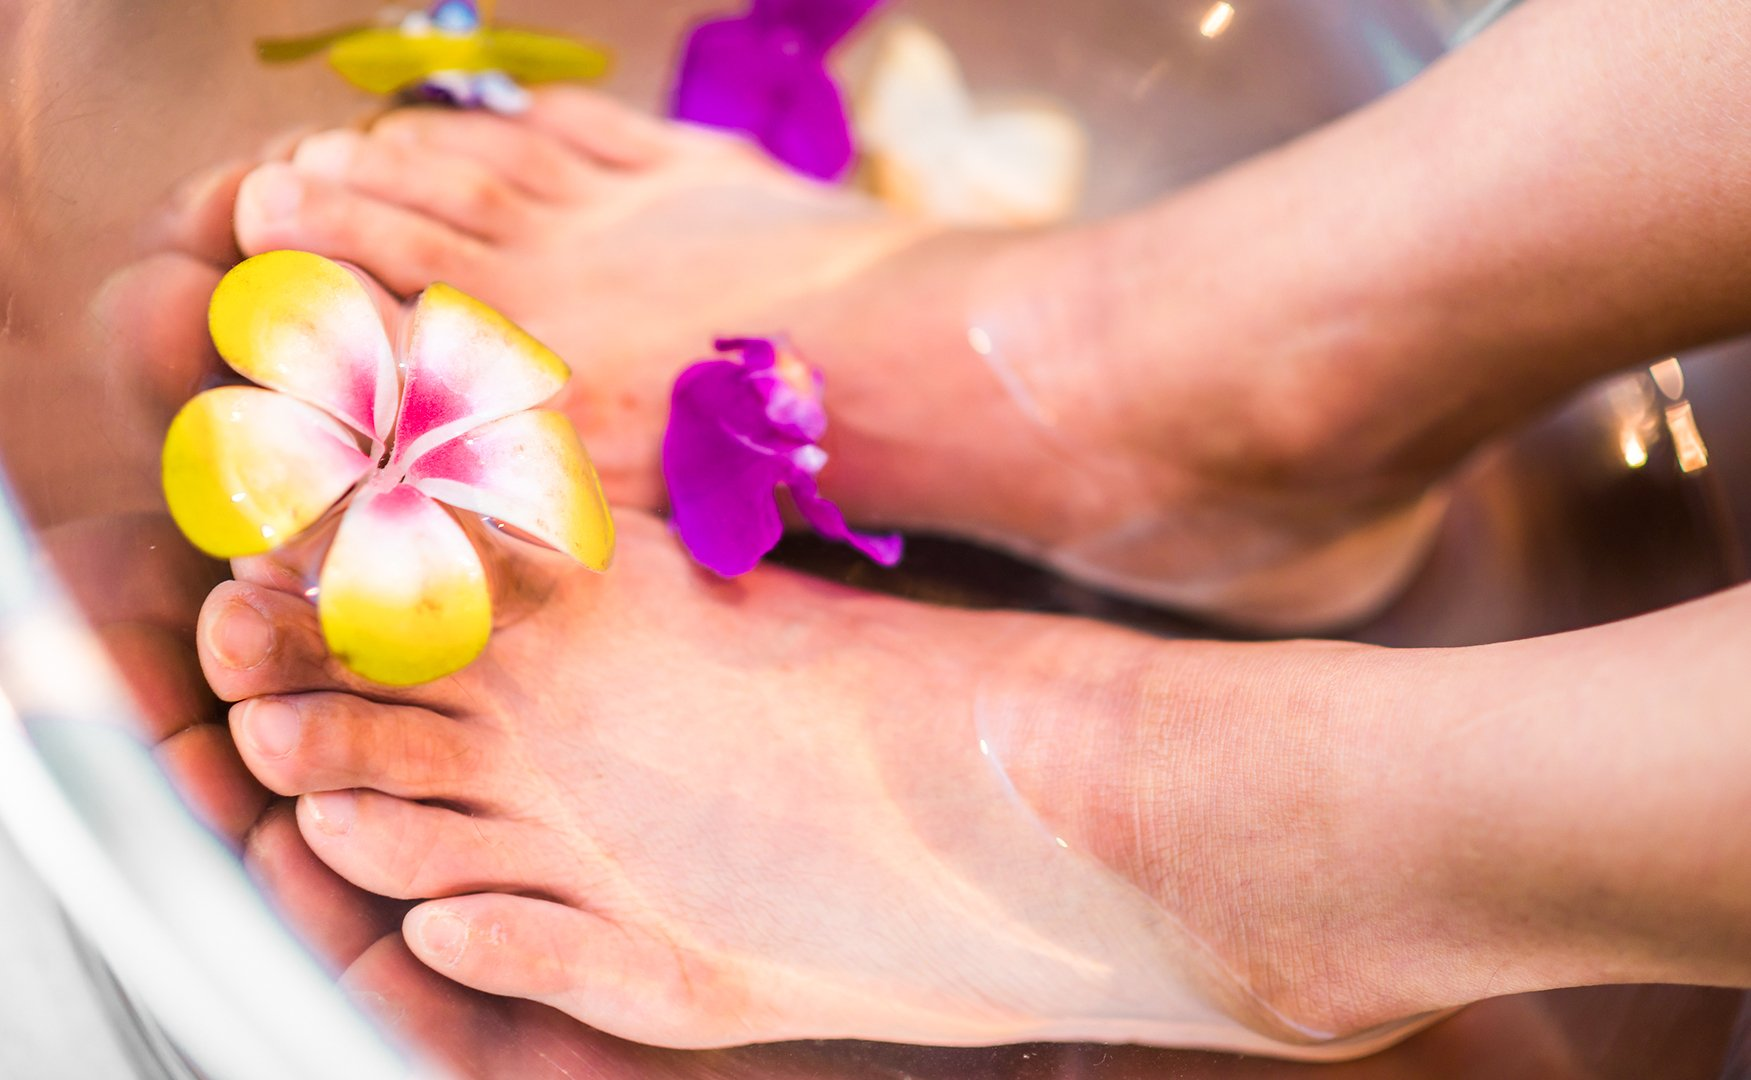 Everything You Need to Know About Selling Feet Pics